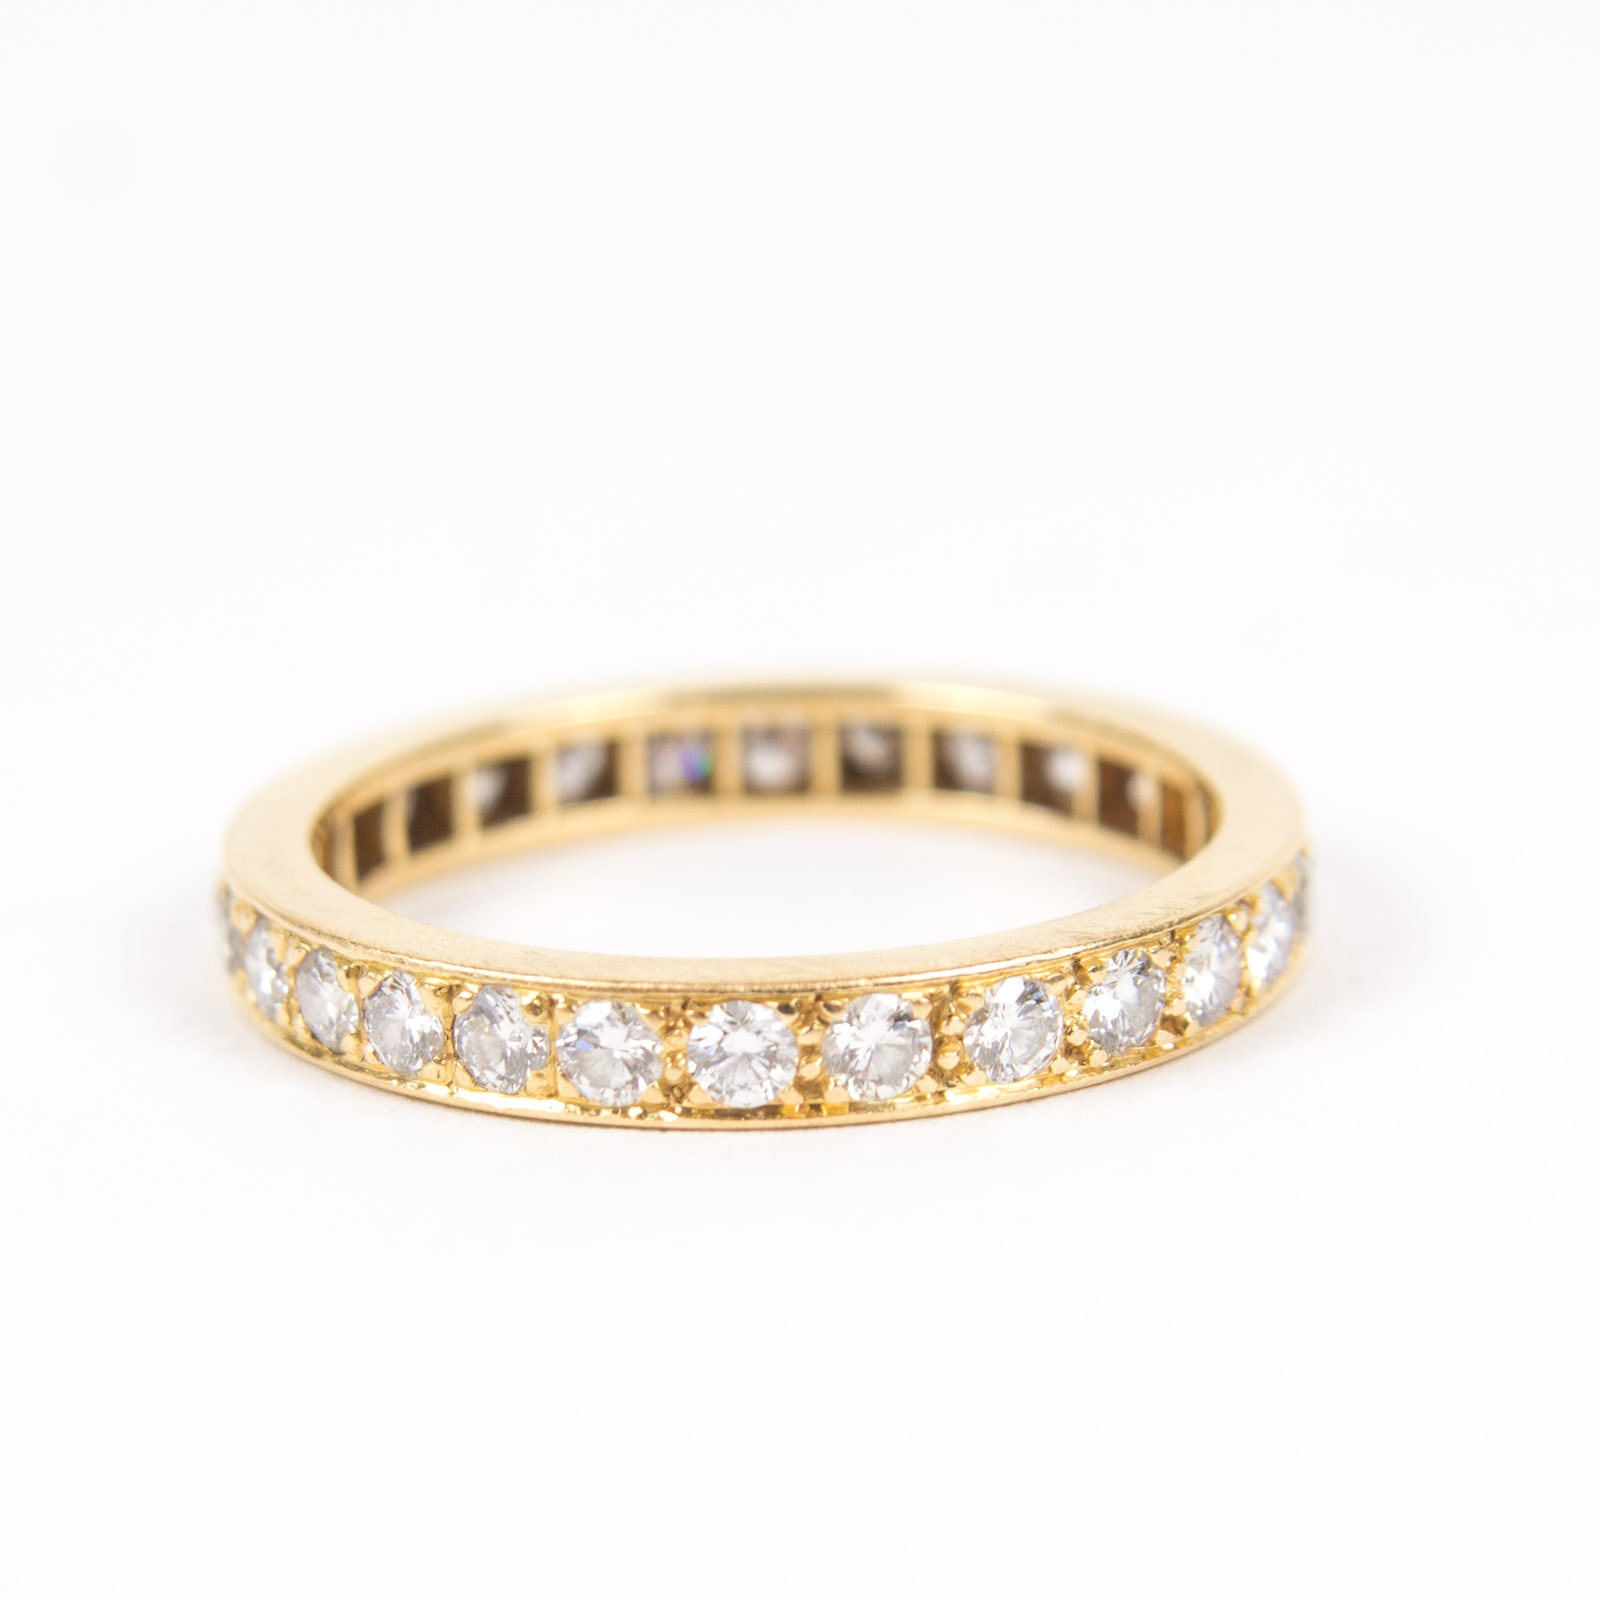 18K Yellow Gold and 1.05 CTW Diamond Eternity Ring